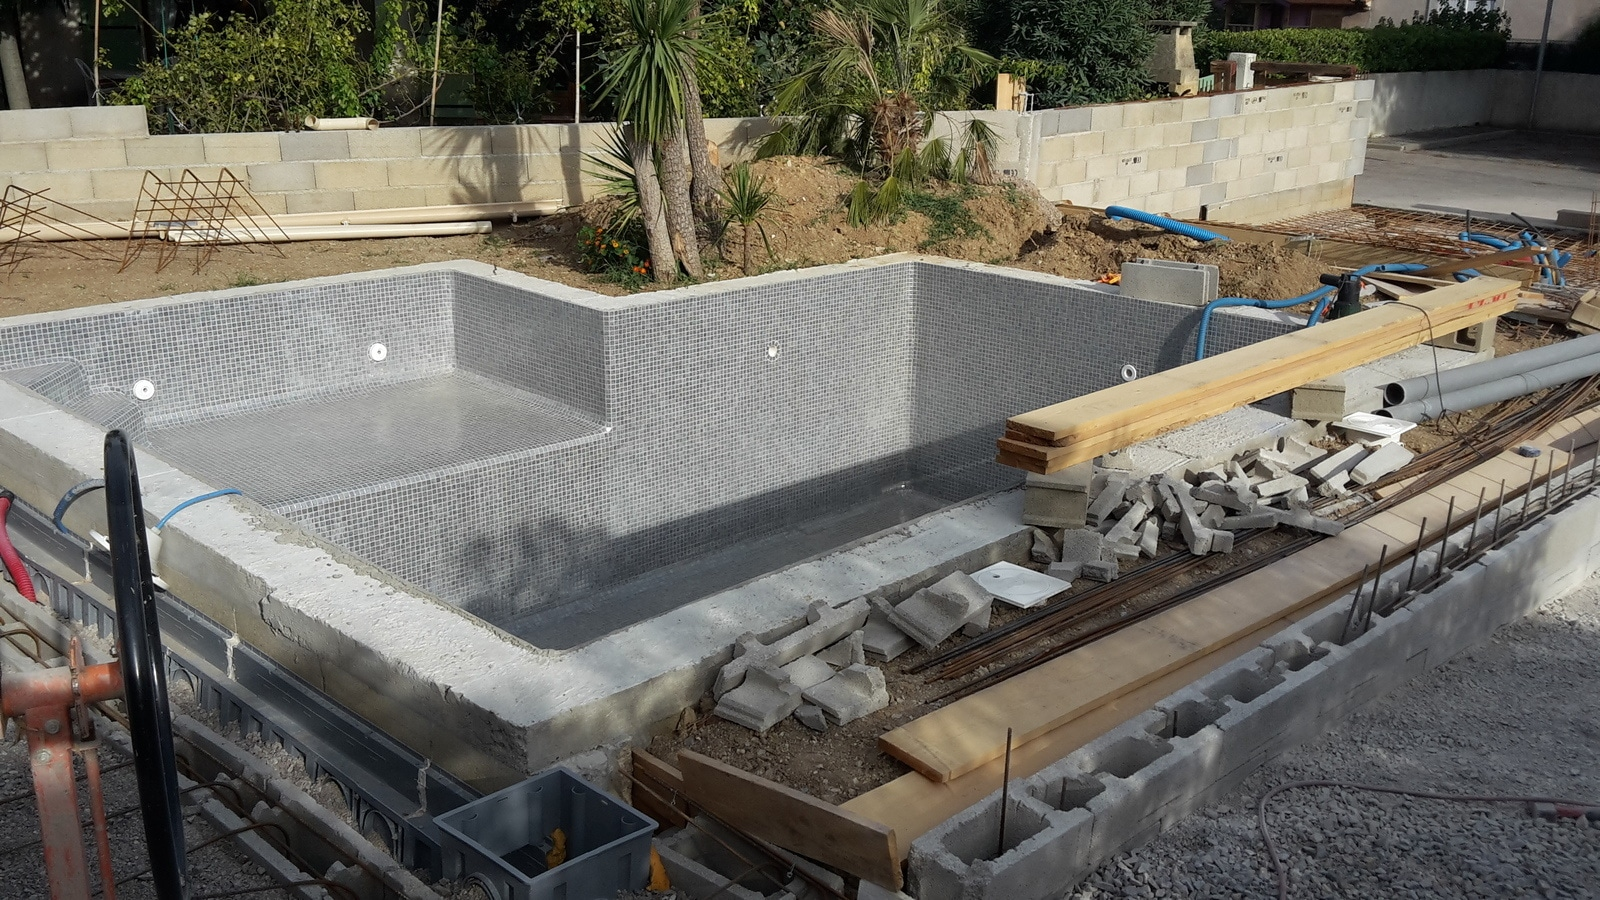 Comment construire une piscine les tapes constructives for Construire sa piscine